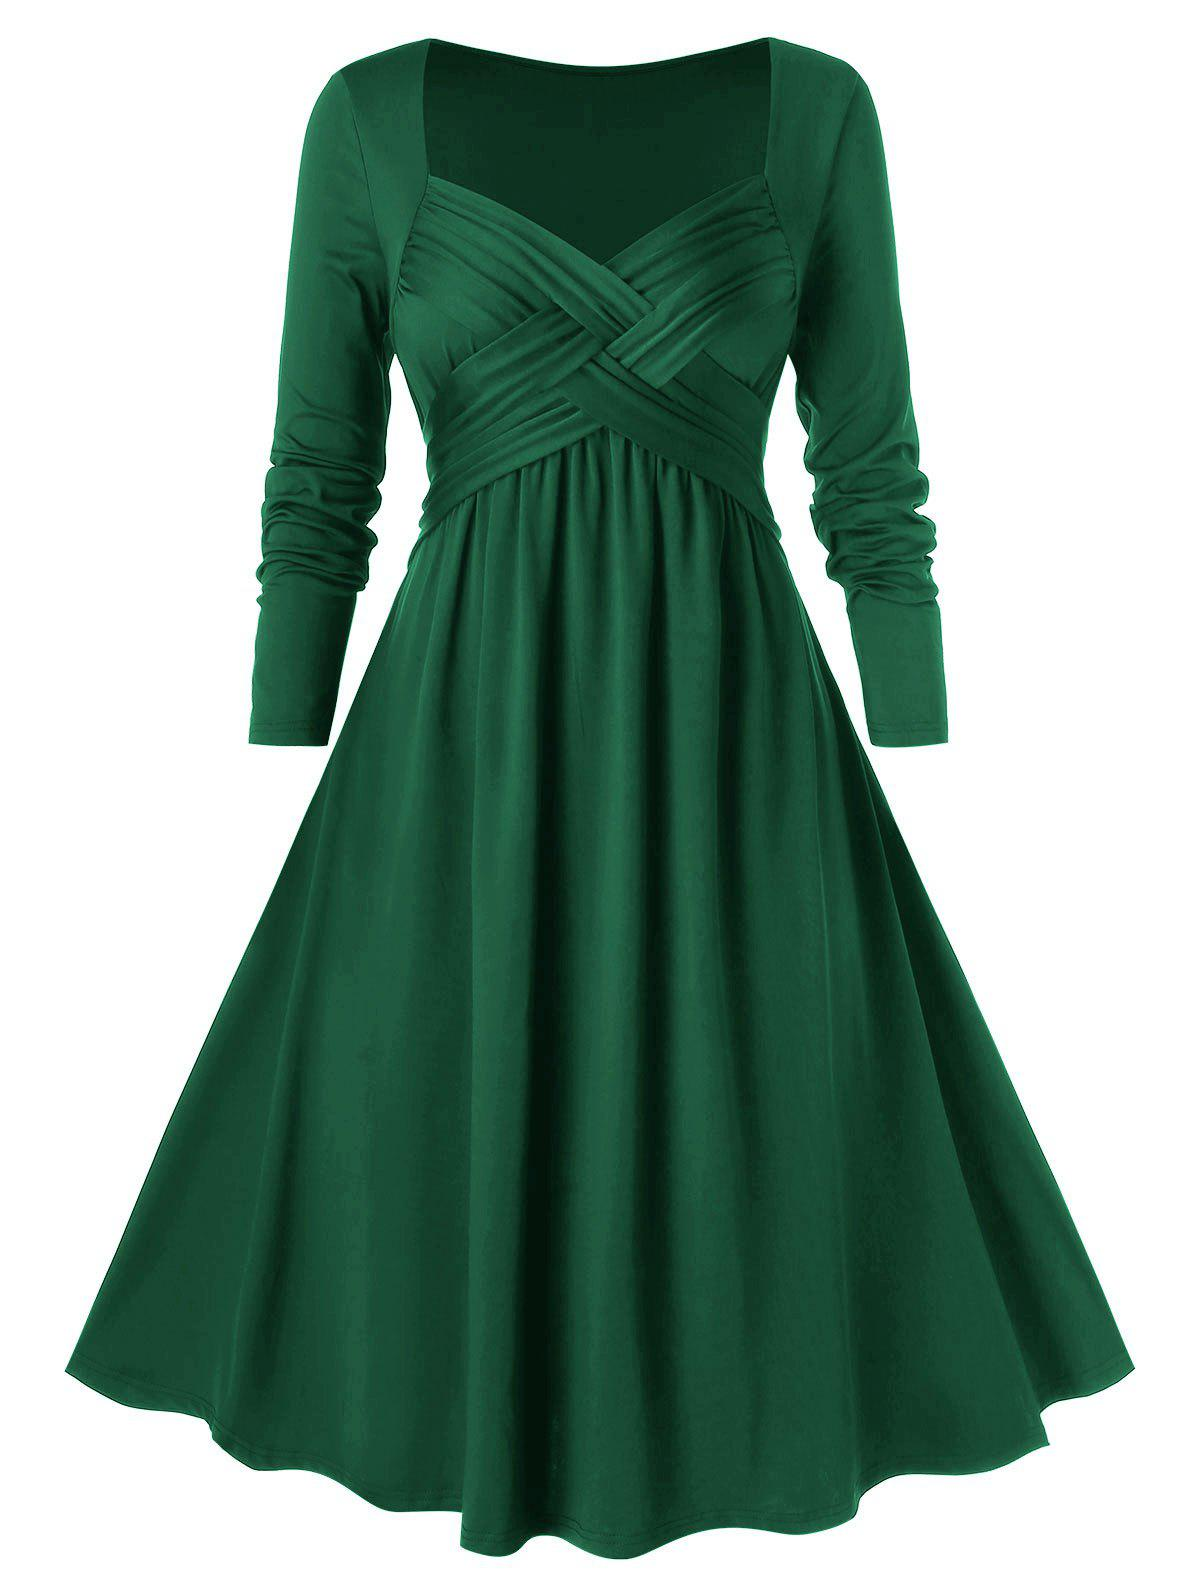 Plus Size Crossover Midi Flare Dress - MEDIUM SEA GREEN 3X